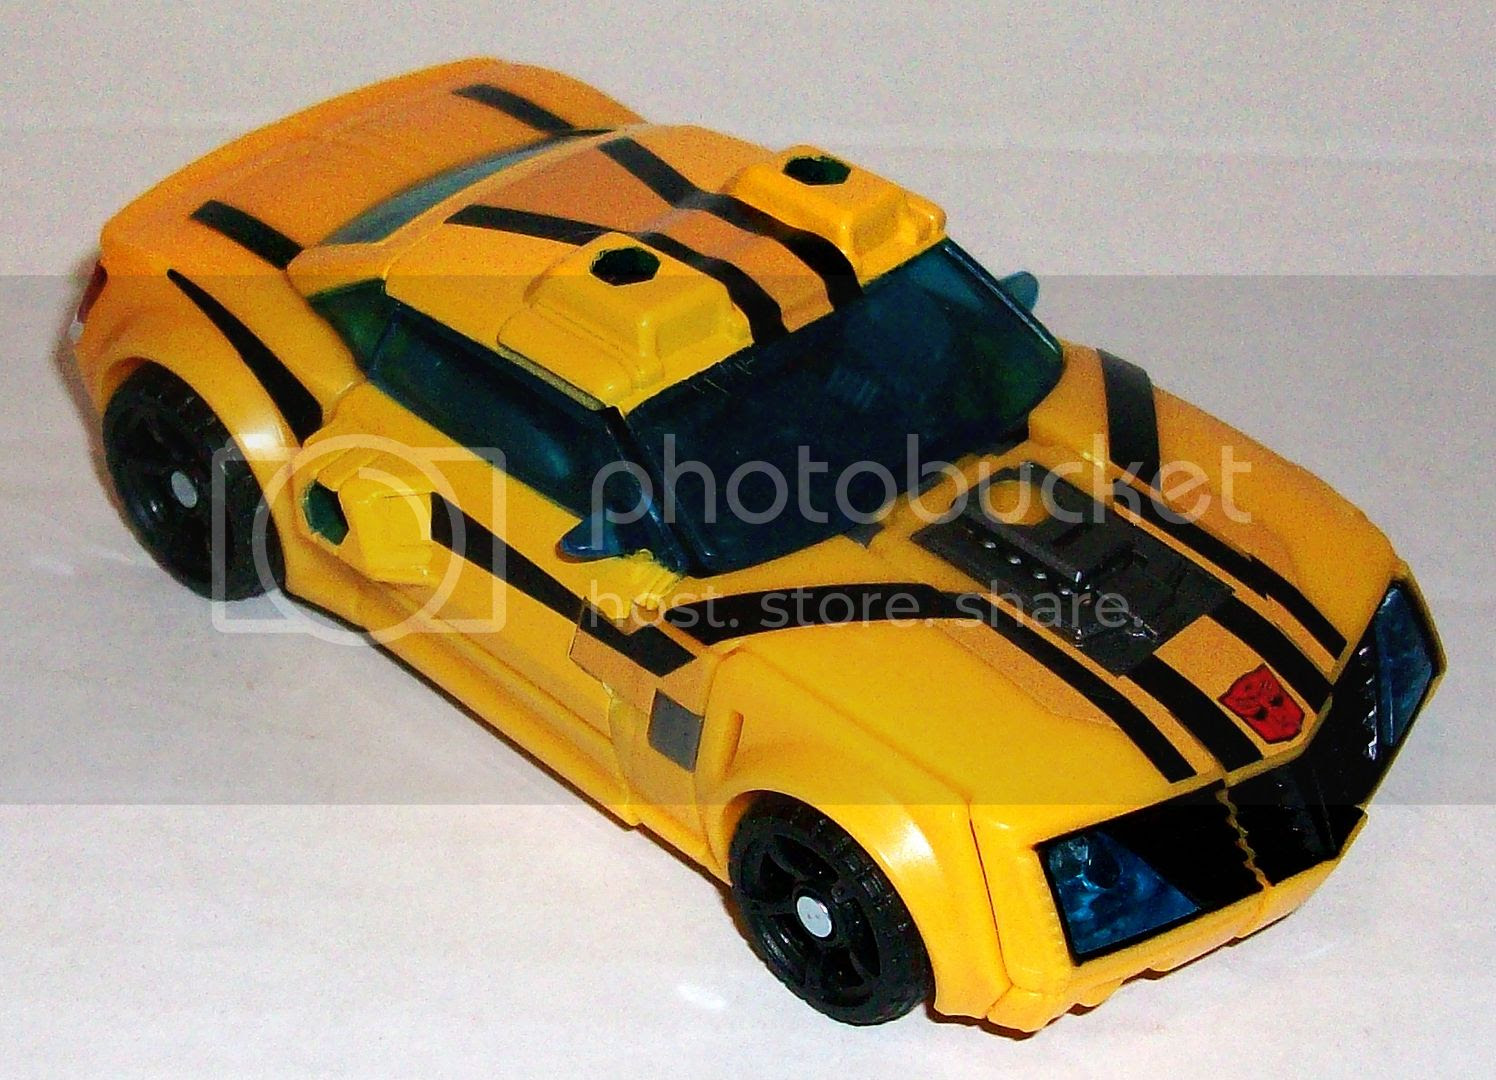 Bumblebee AM-02 photo 068_zpsdcc47ea0.jpg